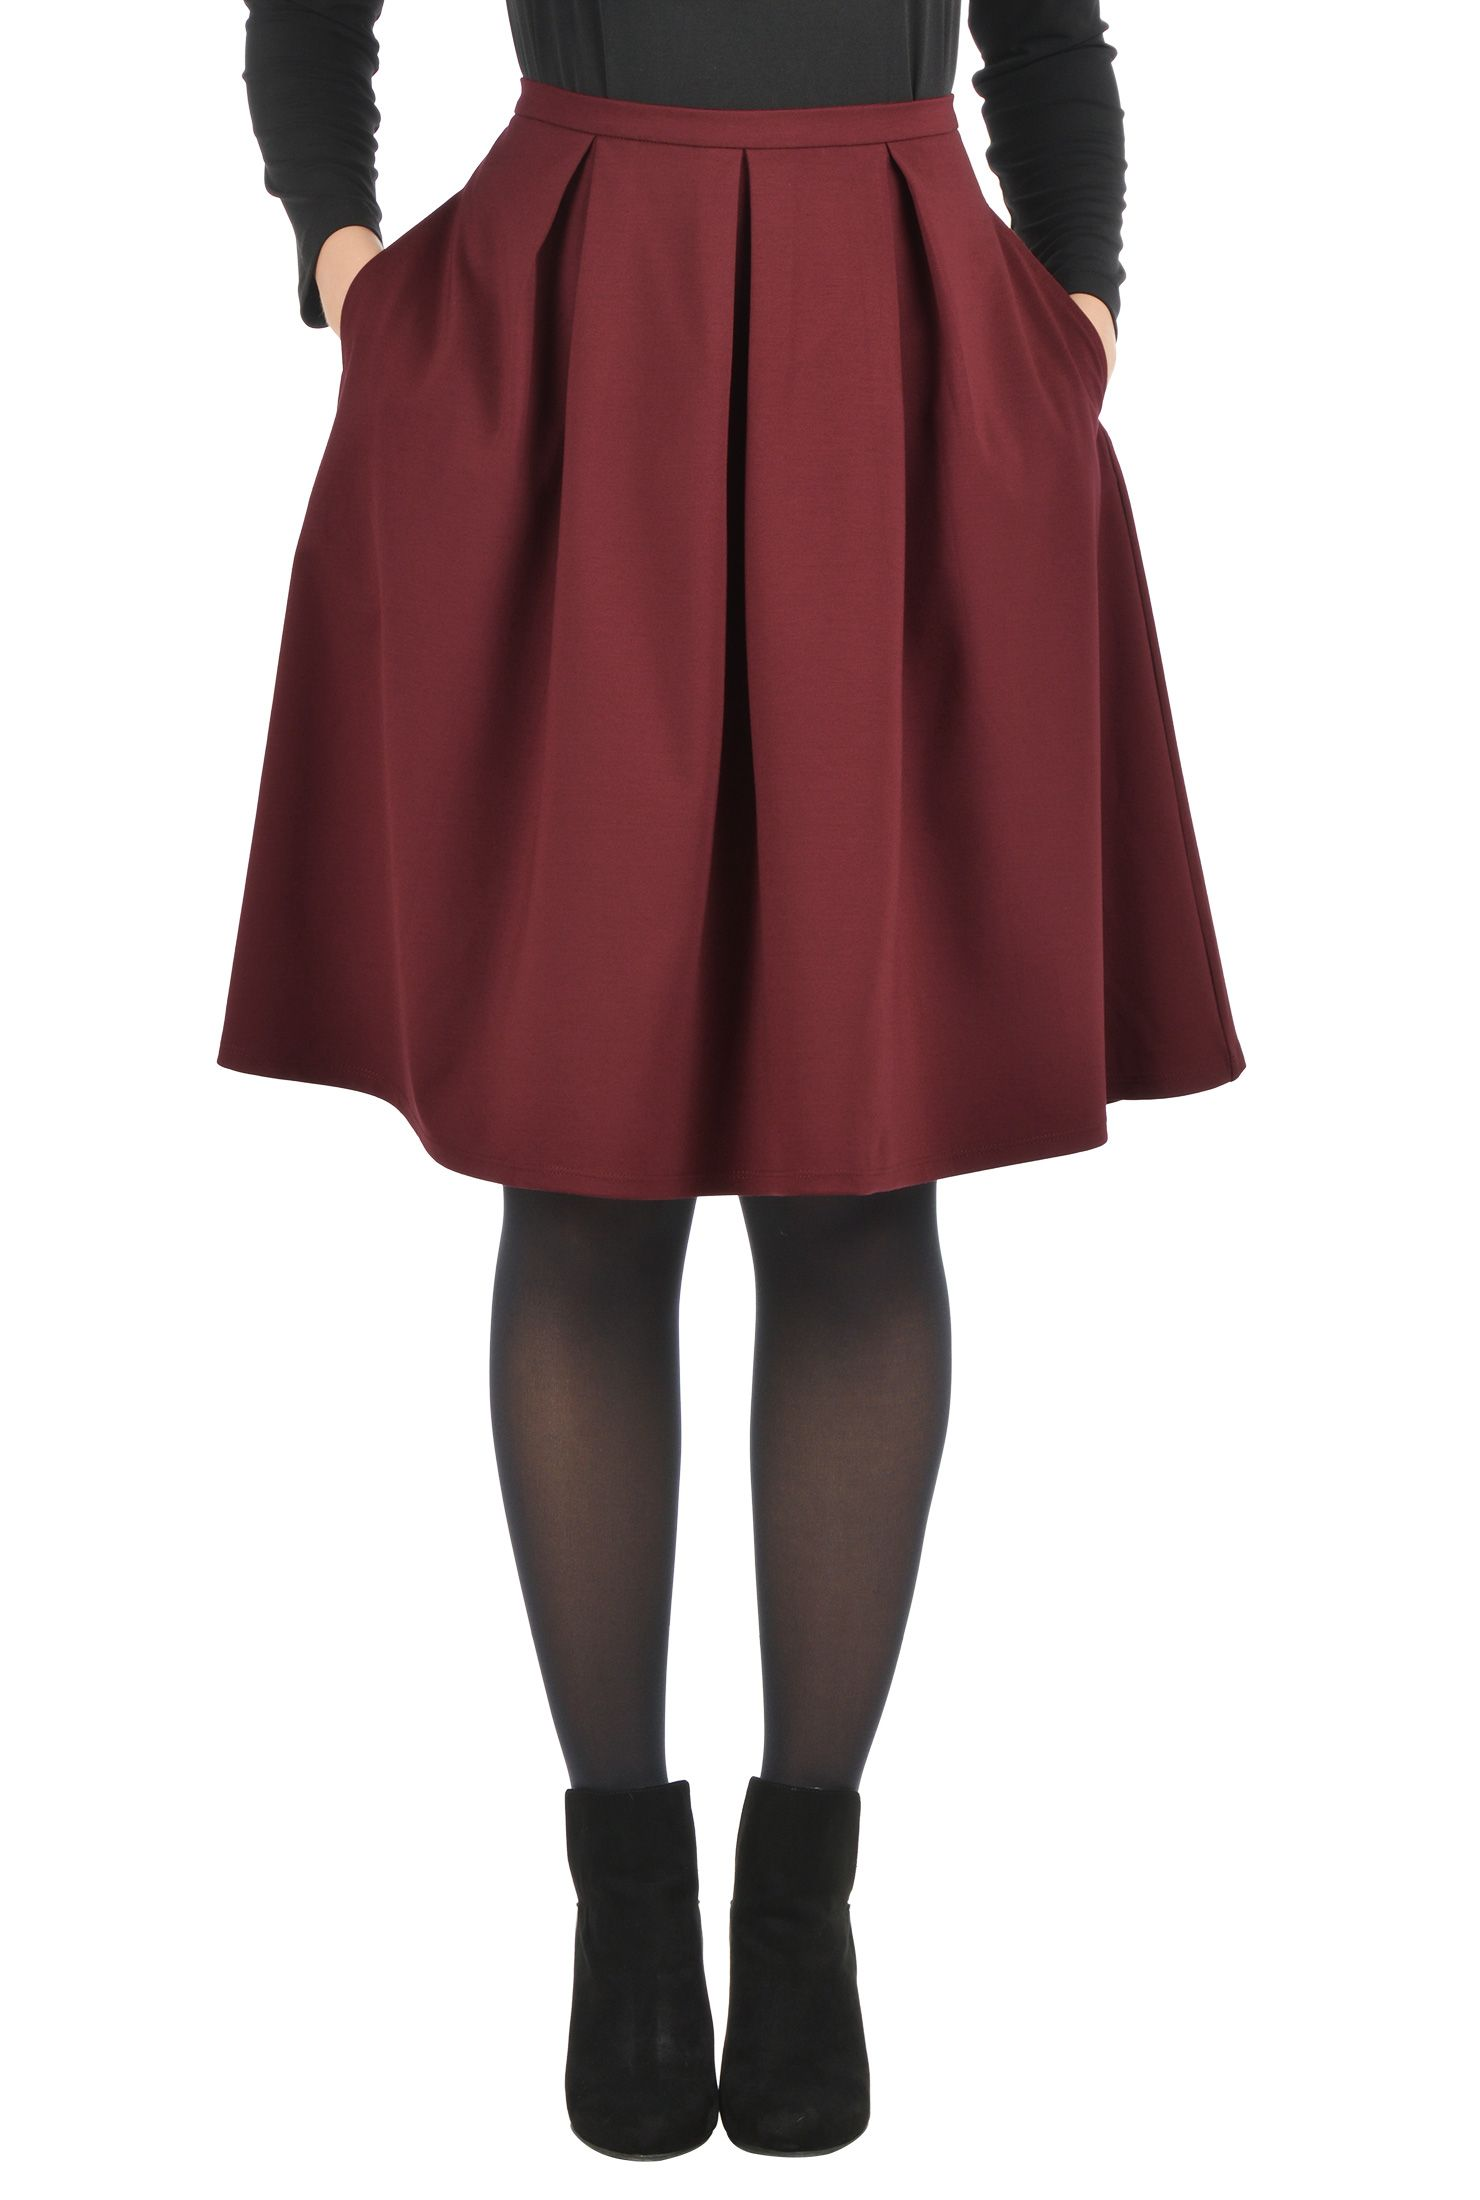 9489dfa85b A vibrant hue energizes our flattering ponte-knit skirt topped with a  narrow waistband and flared with box pleats.